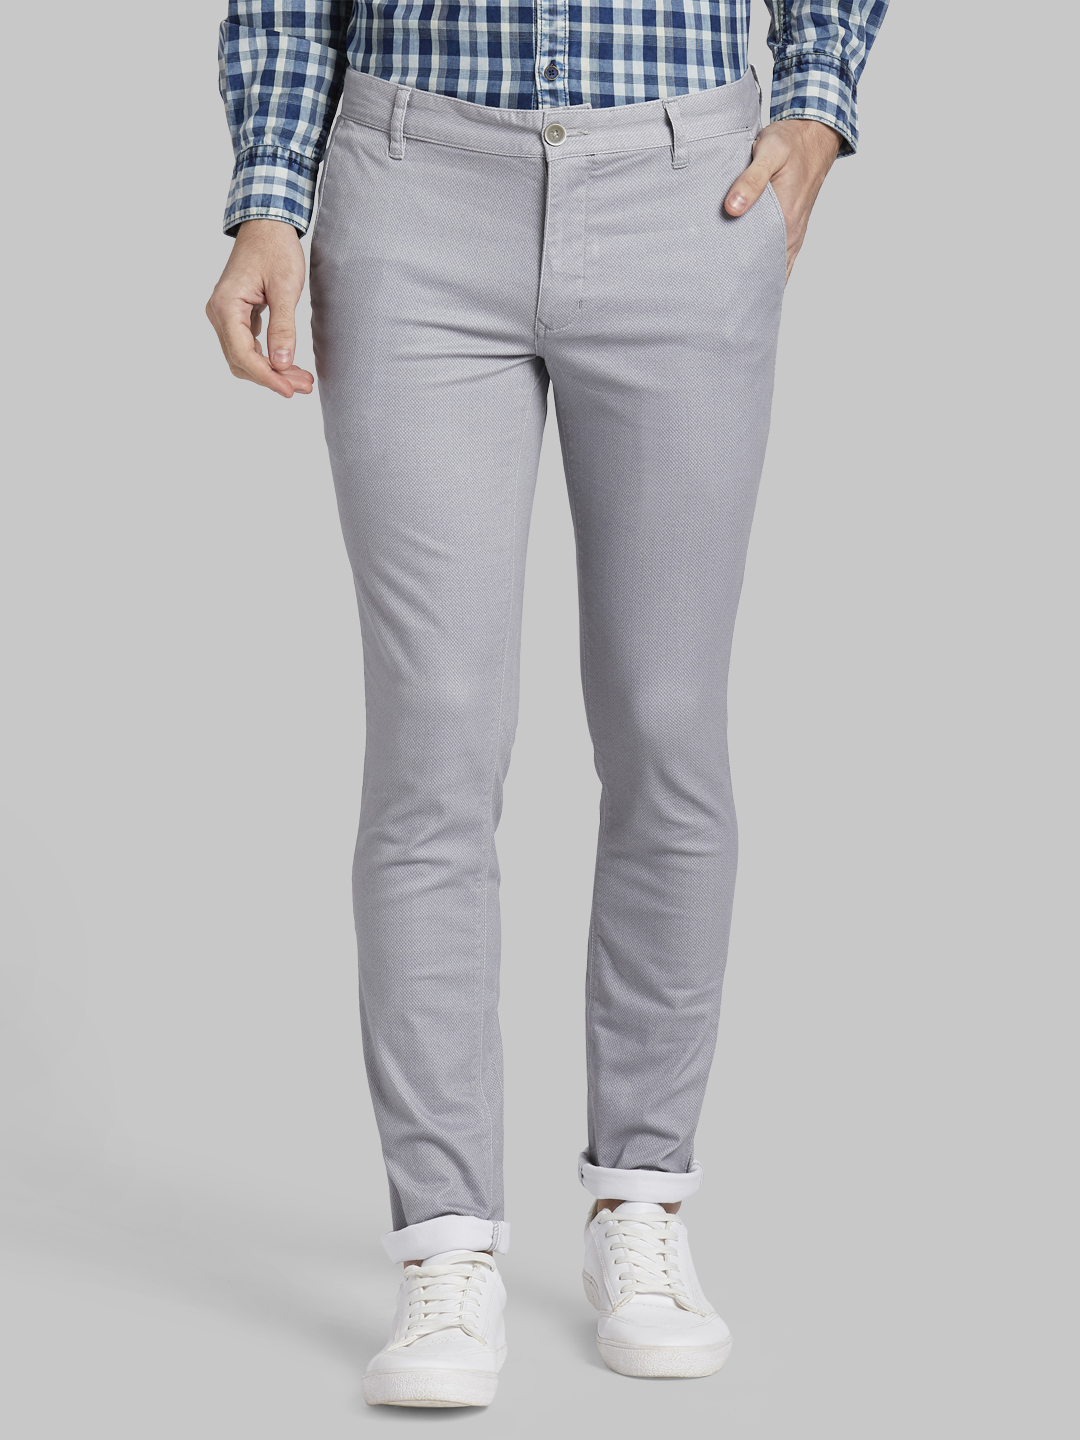 PARX   XMTS02817G4 Grey Formal Trousers